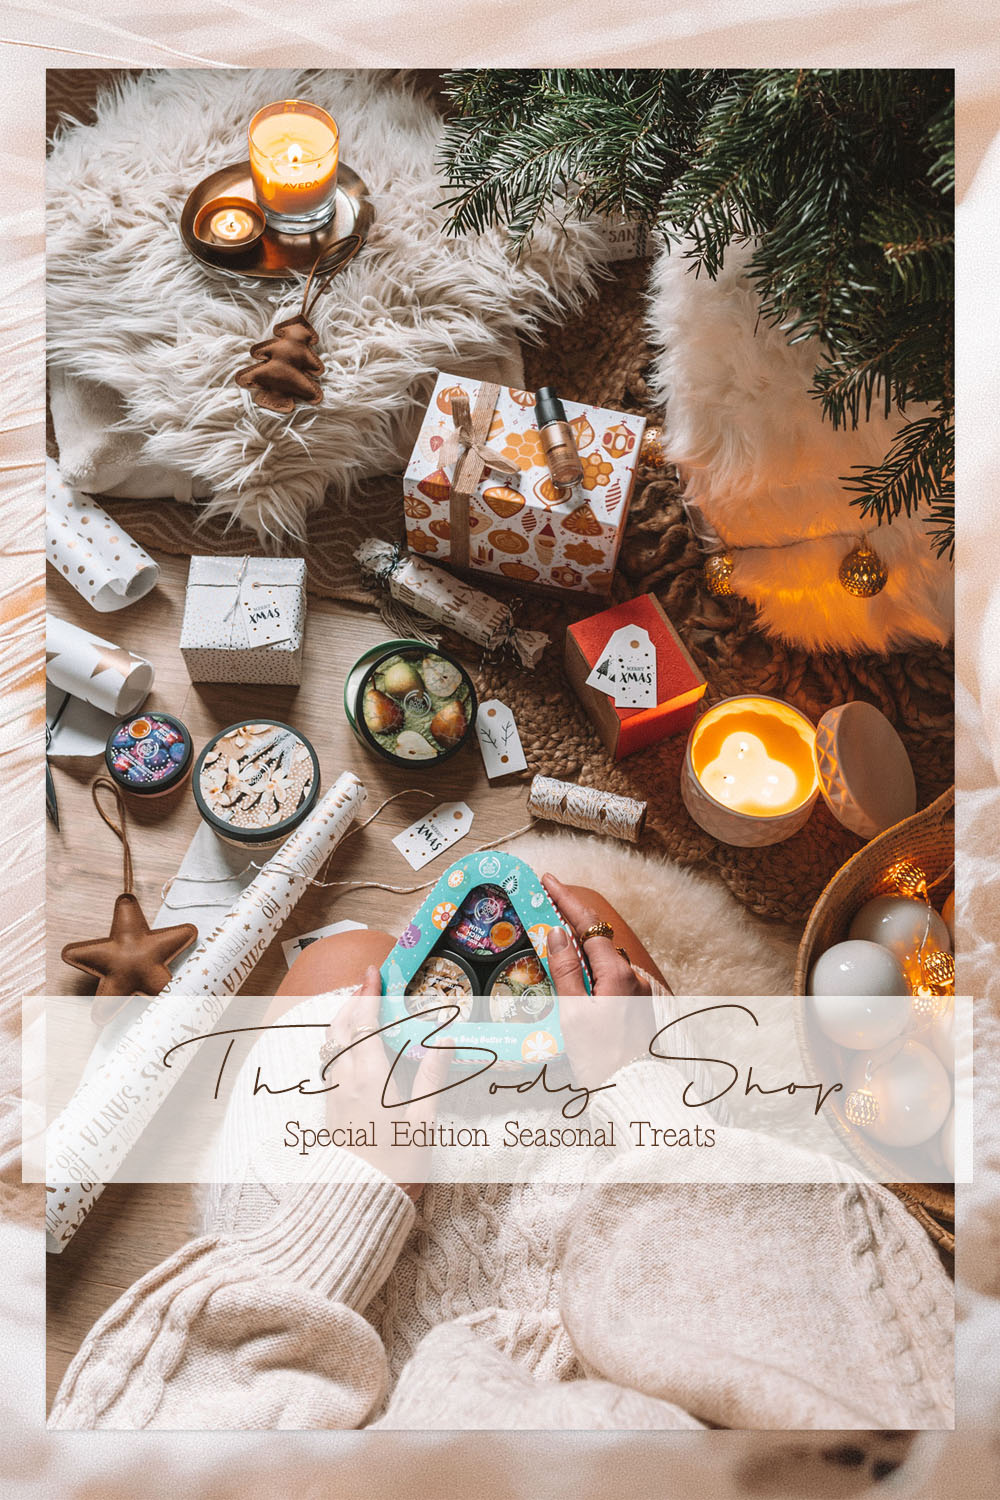 Special Edition Seasonal Treats by The Body Shop